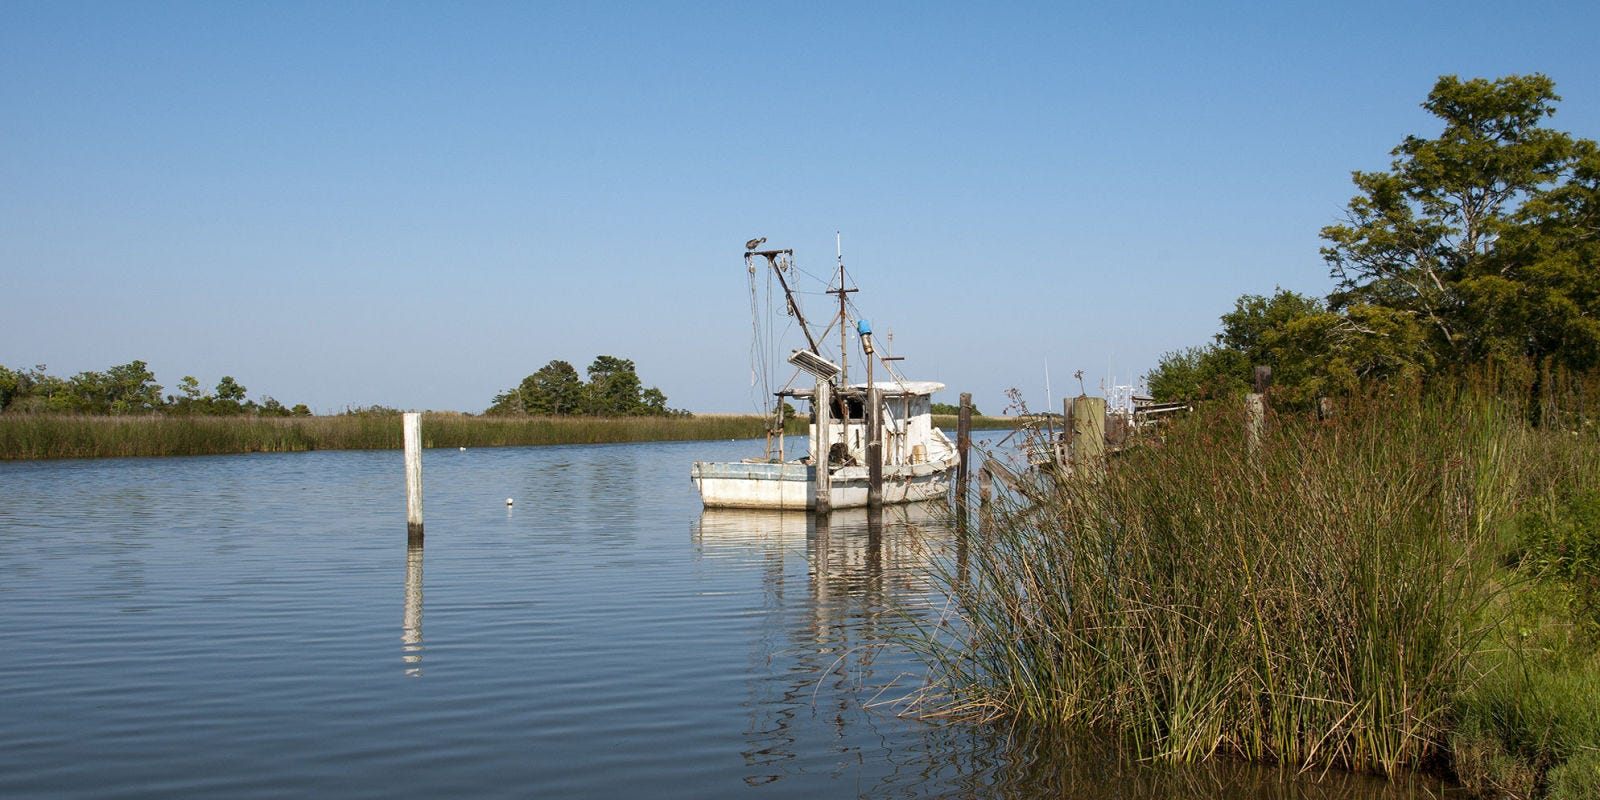 Water, Natural environment, Waterway, River, Bayou, Vehicle, Boat, Water resources, Tree, Bank,